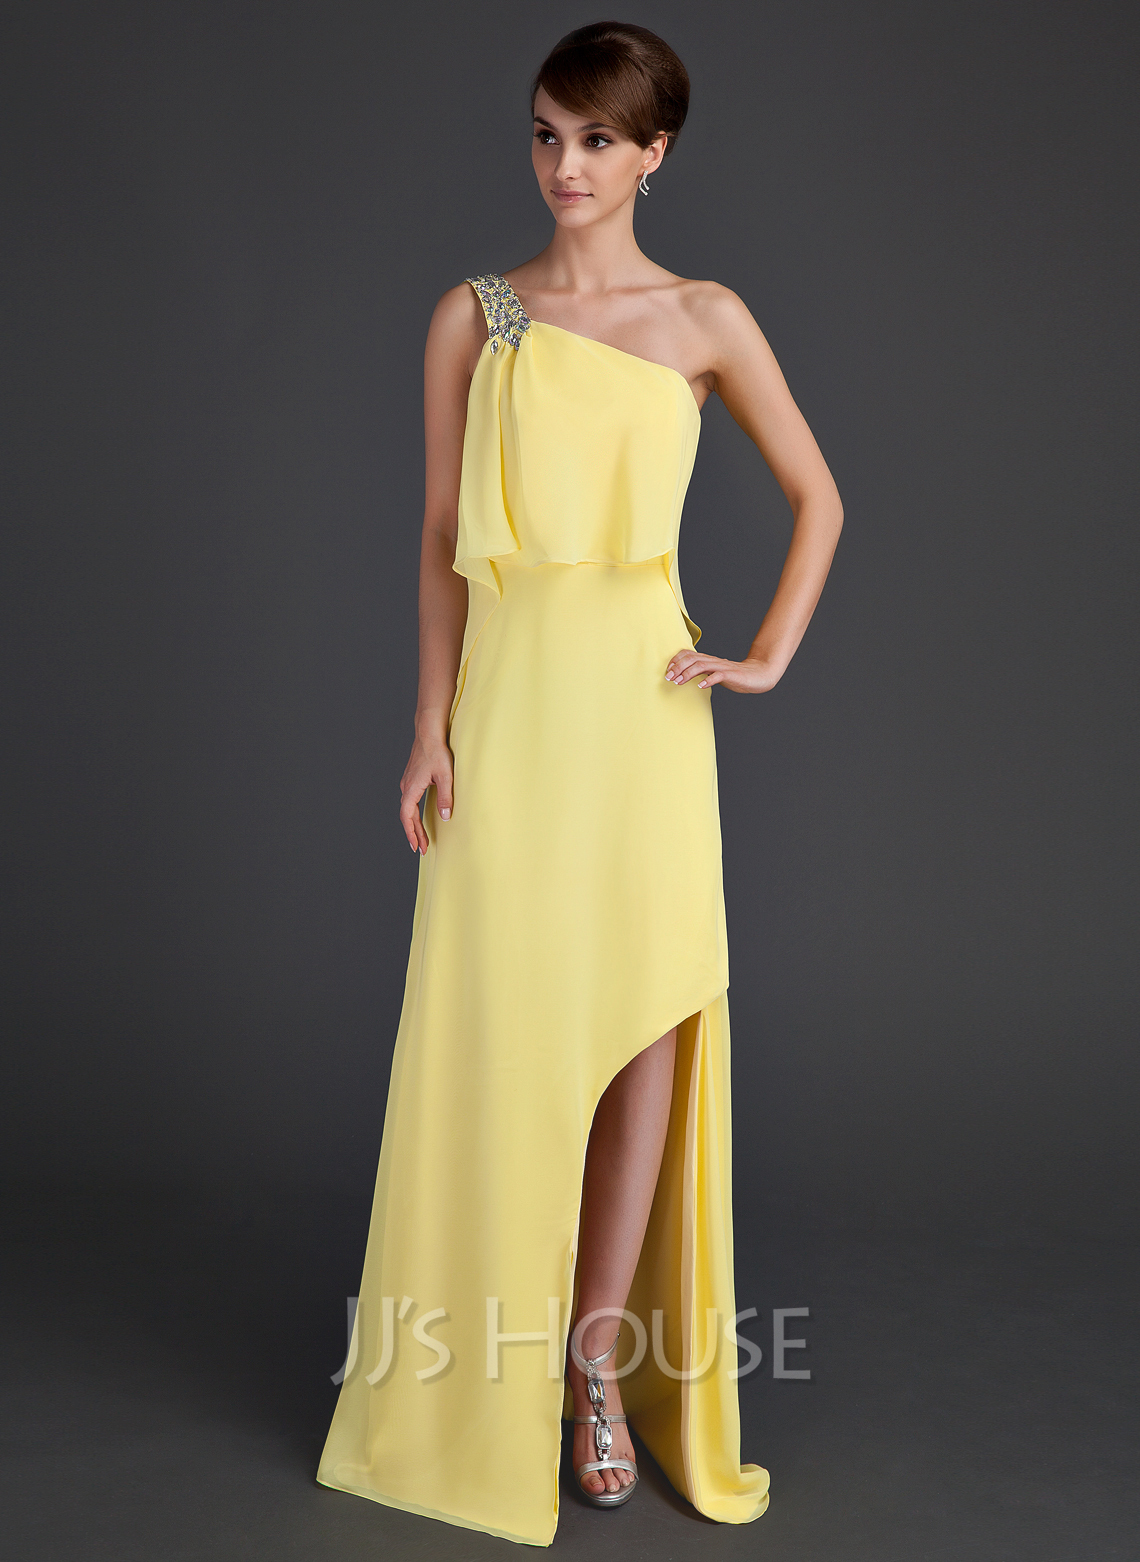 A-Line/Princess One-Shoulder Asymmetrical Chiffon Holiday Dress With Beading